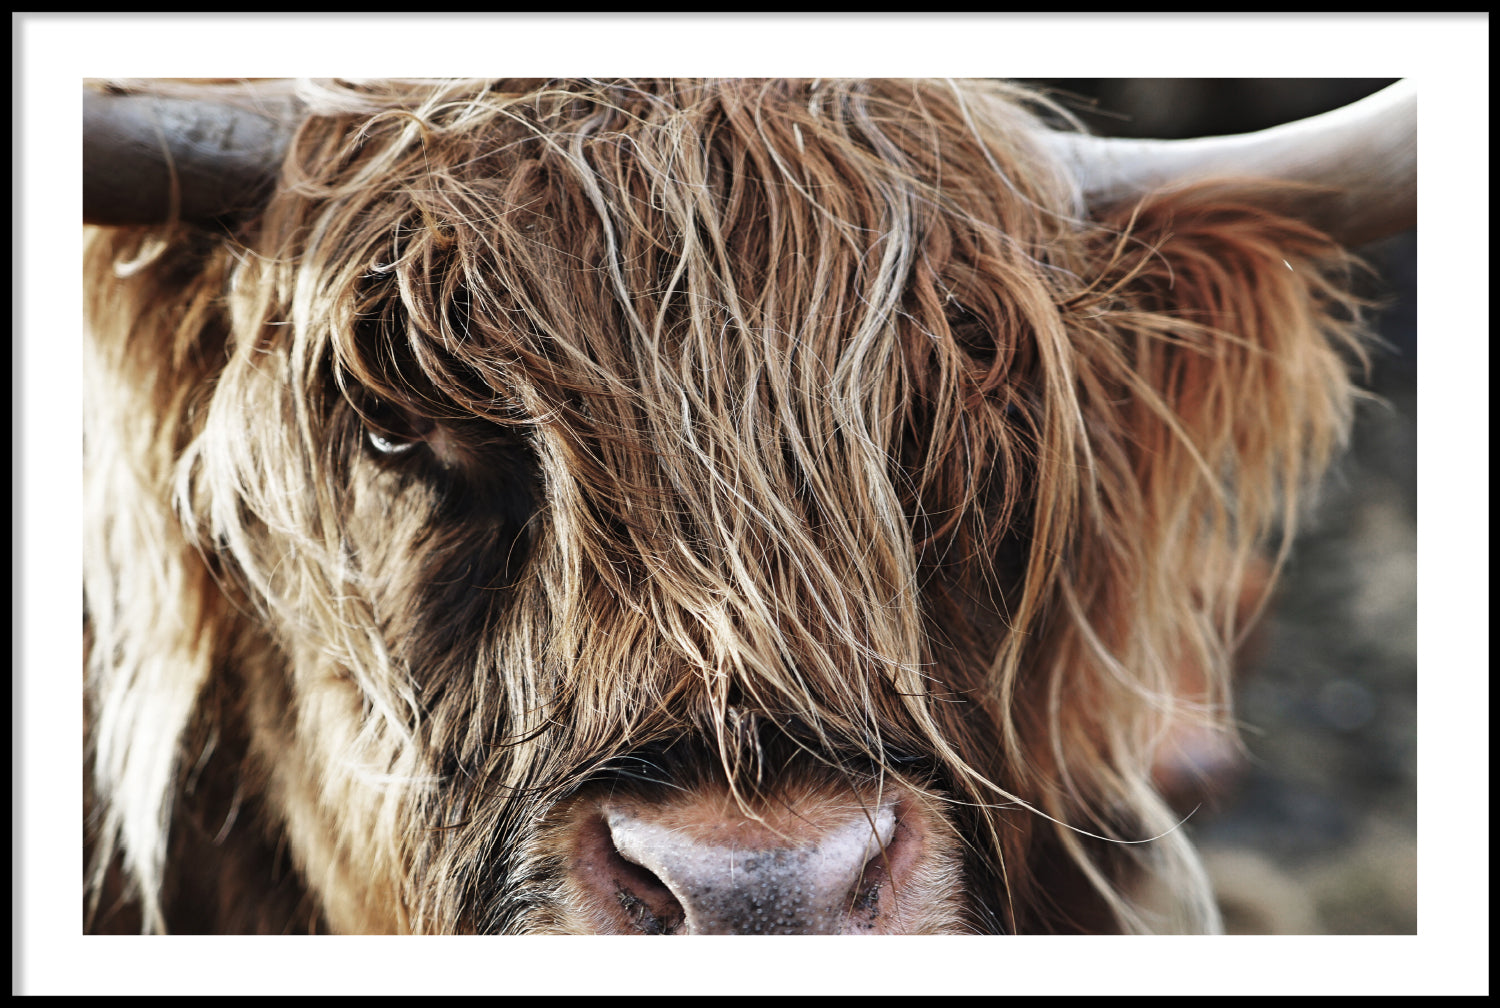 HIGHLAND CATTLE CLOSE UP POSTER